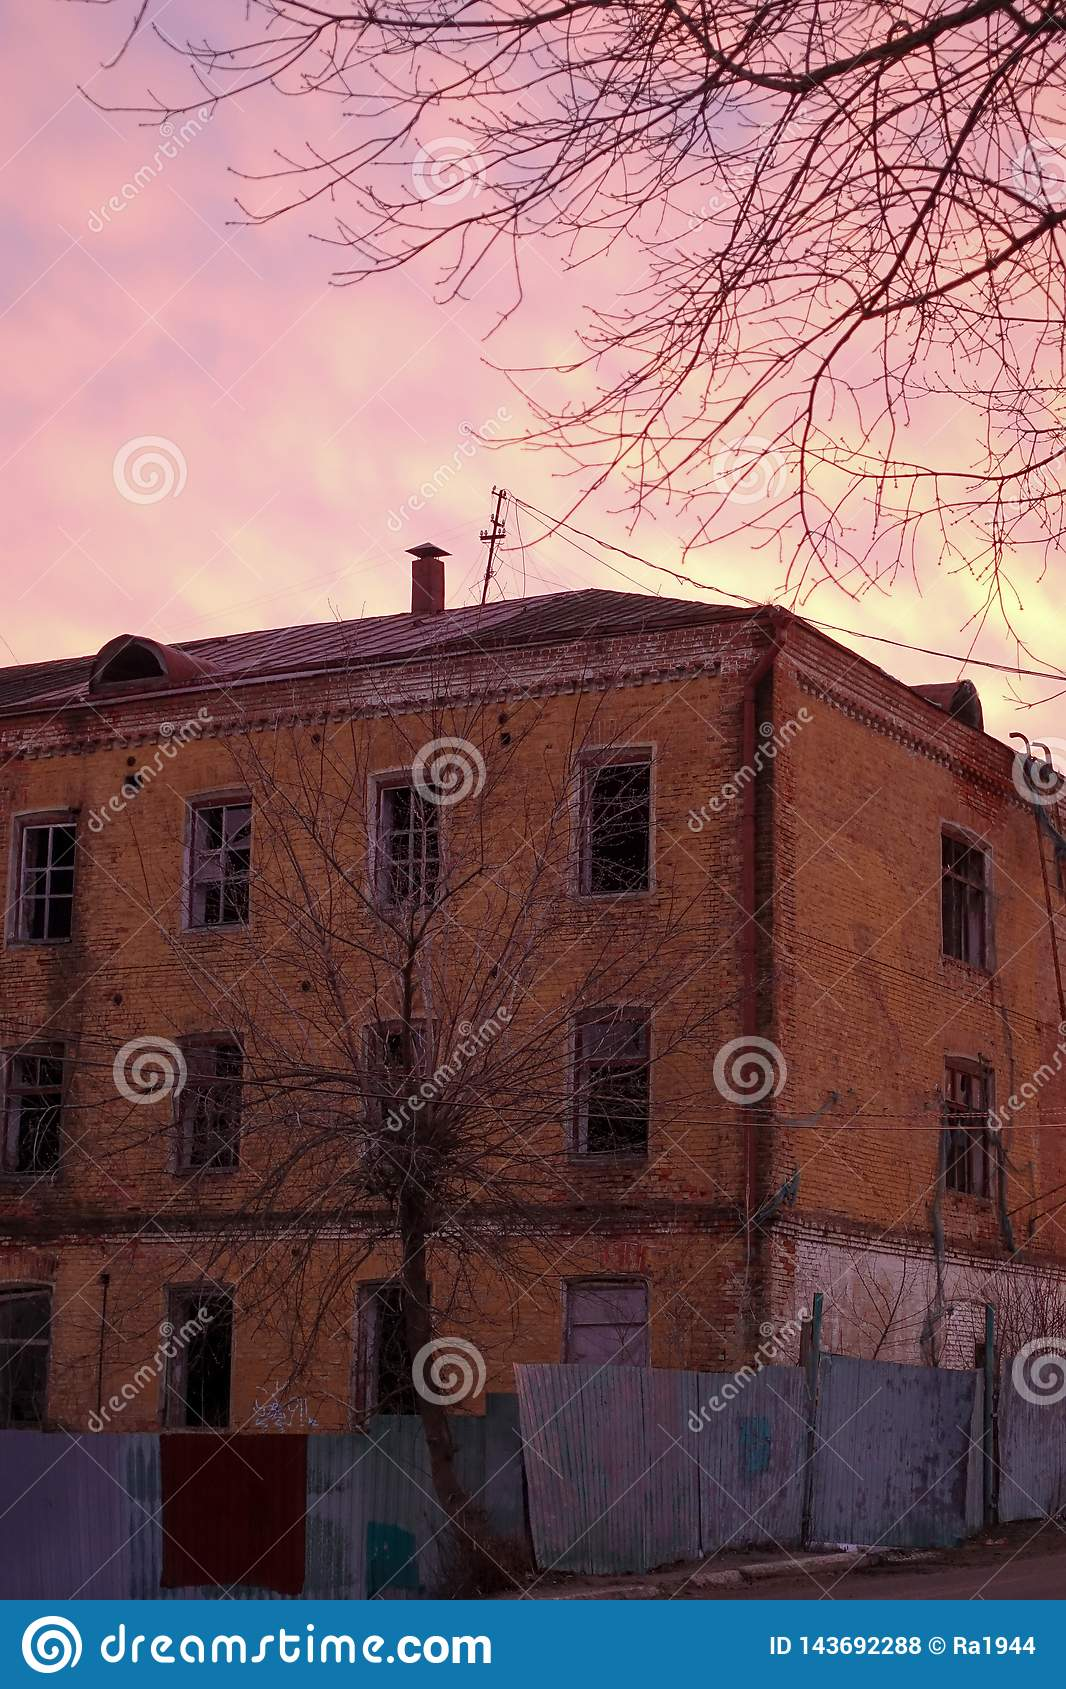 Empty destroyed building with broken windows. Pink sky Sunset. Photo in red colors. The oppressive atmosphere of destruction.